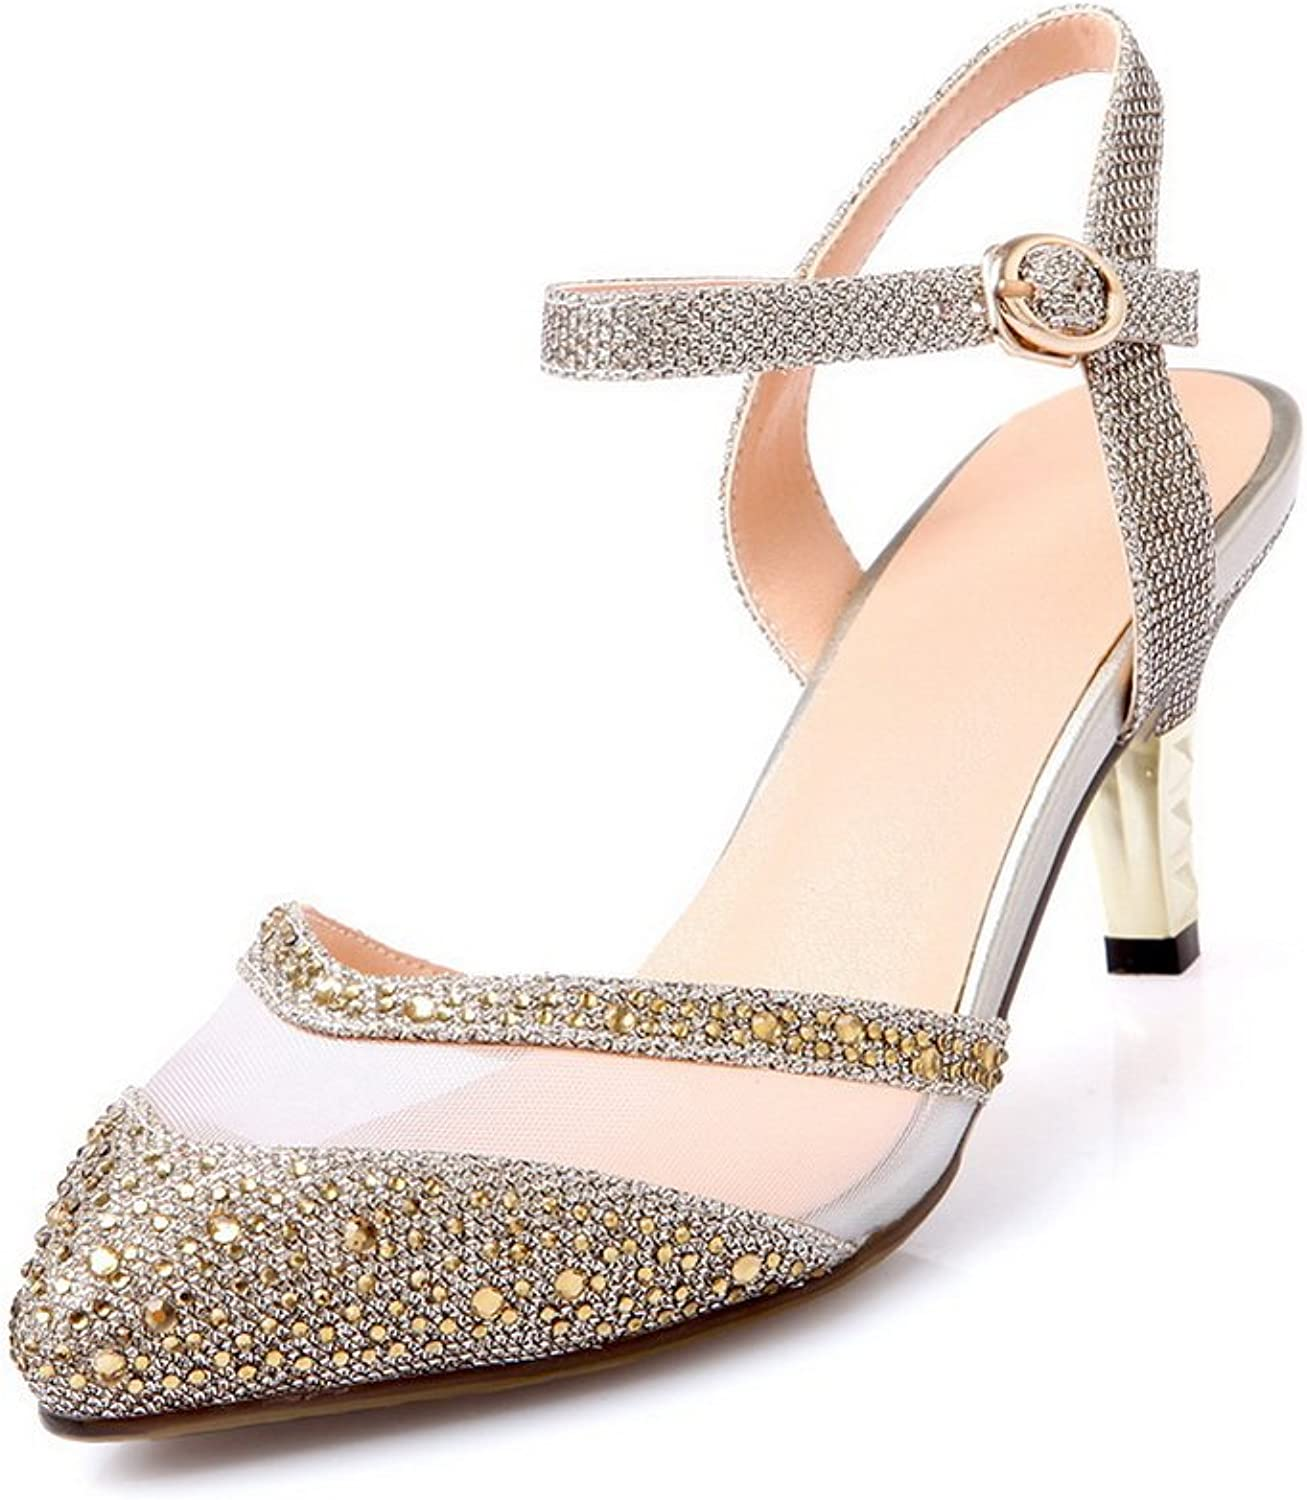 AllhqFashion Women's Buckle Kitten Heels Blend Materials Solid Pointed Closed Toe Pumps shoes